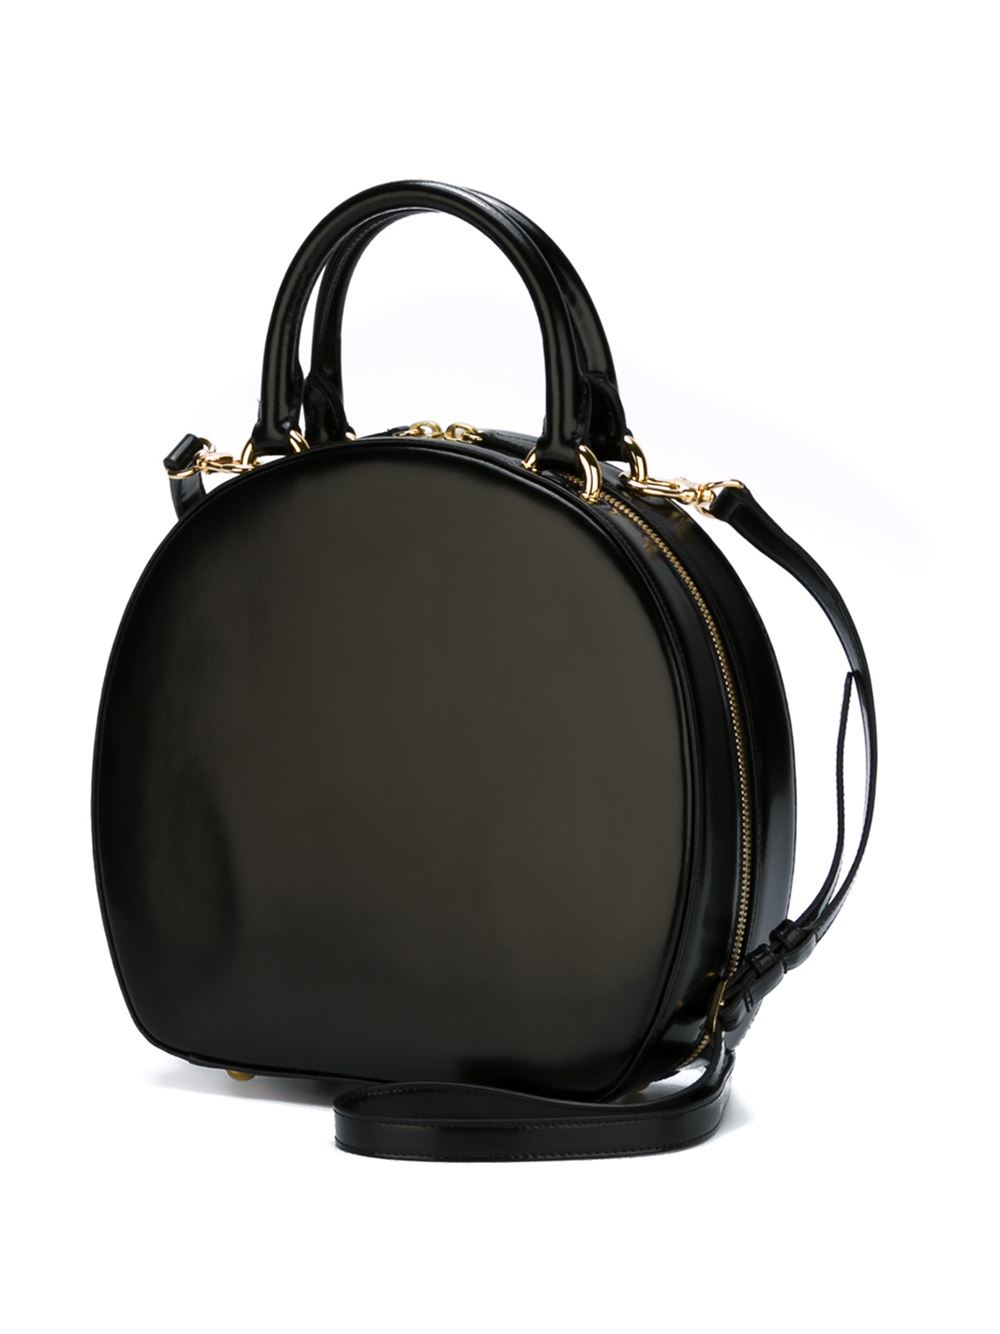 Simone Rocha Round Tote Bag in Black - Lyst